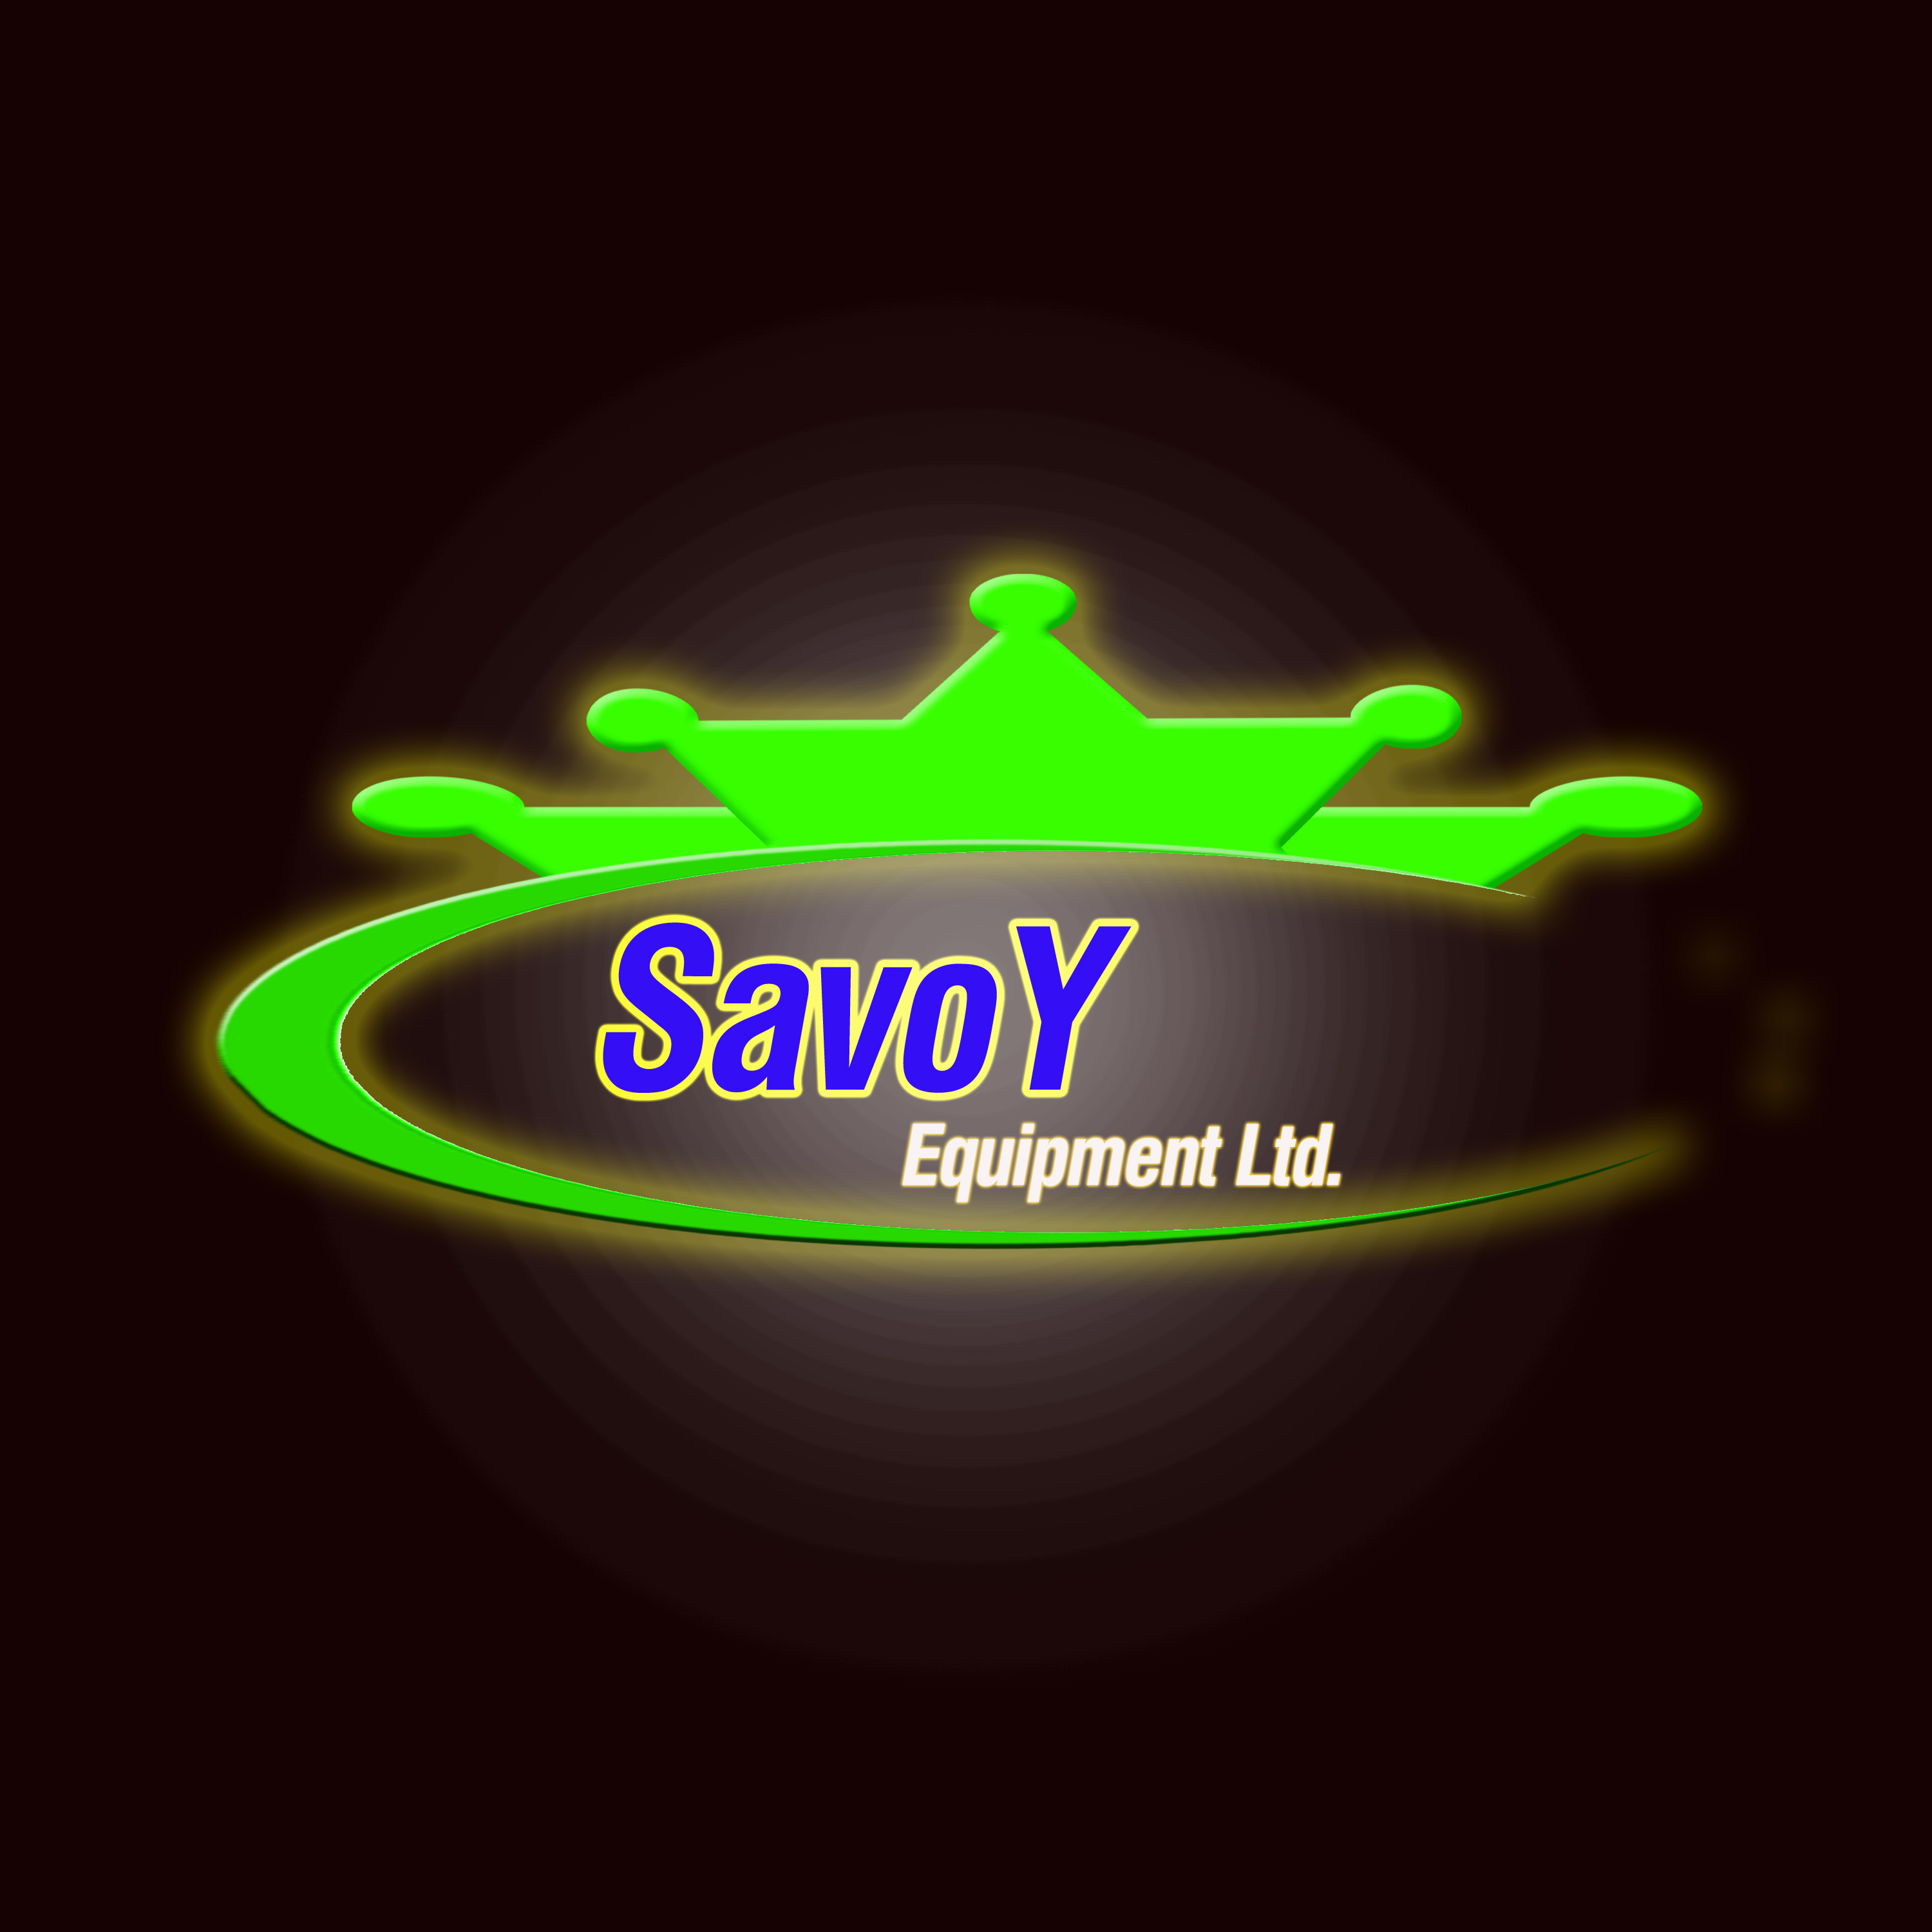 Logo Design by Roberto Sibbaluca - Entry No. 14 in the Logo Design Contest Inspiring Logo Design for Savoy Equipment Ltd..